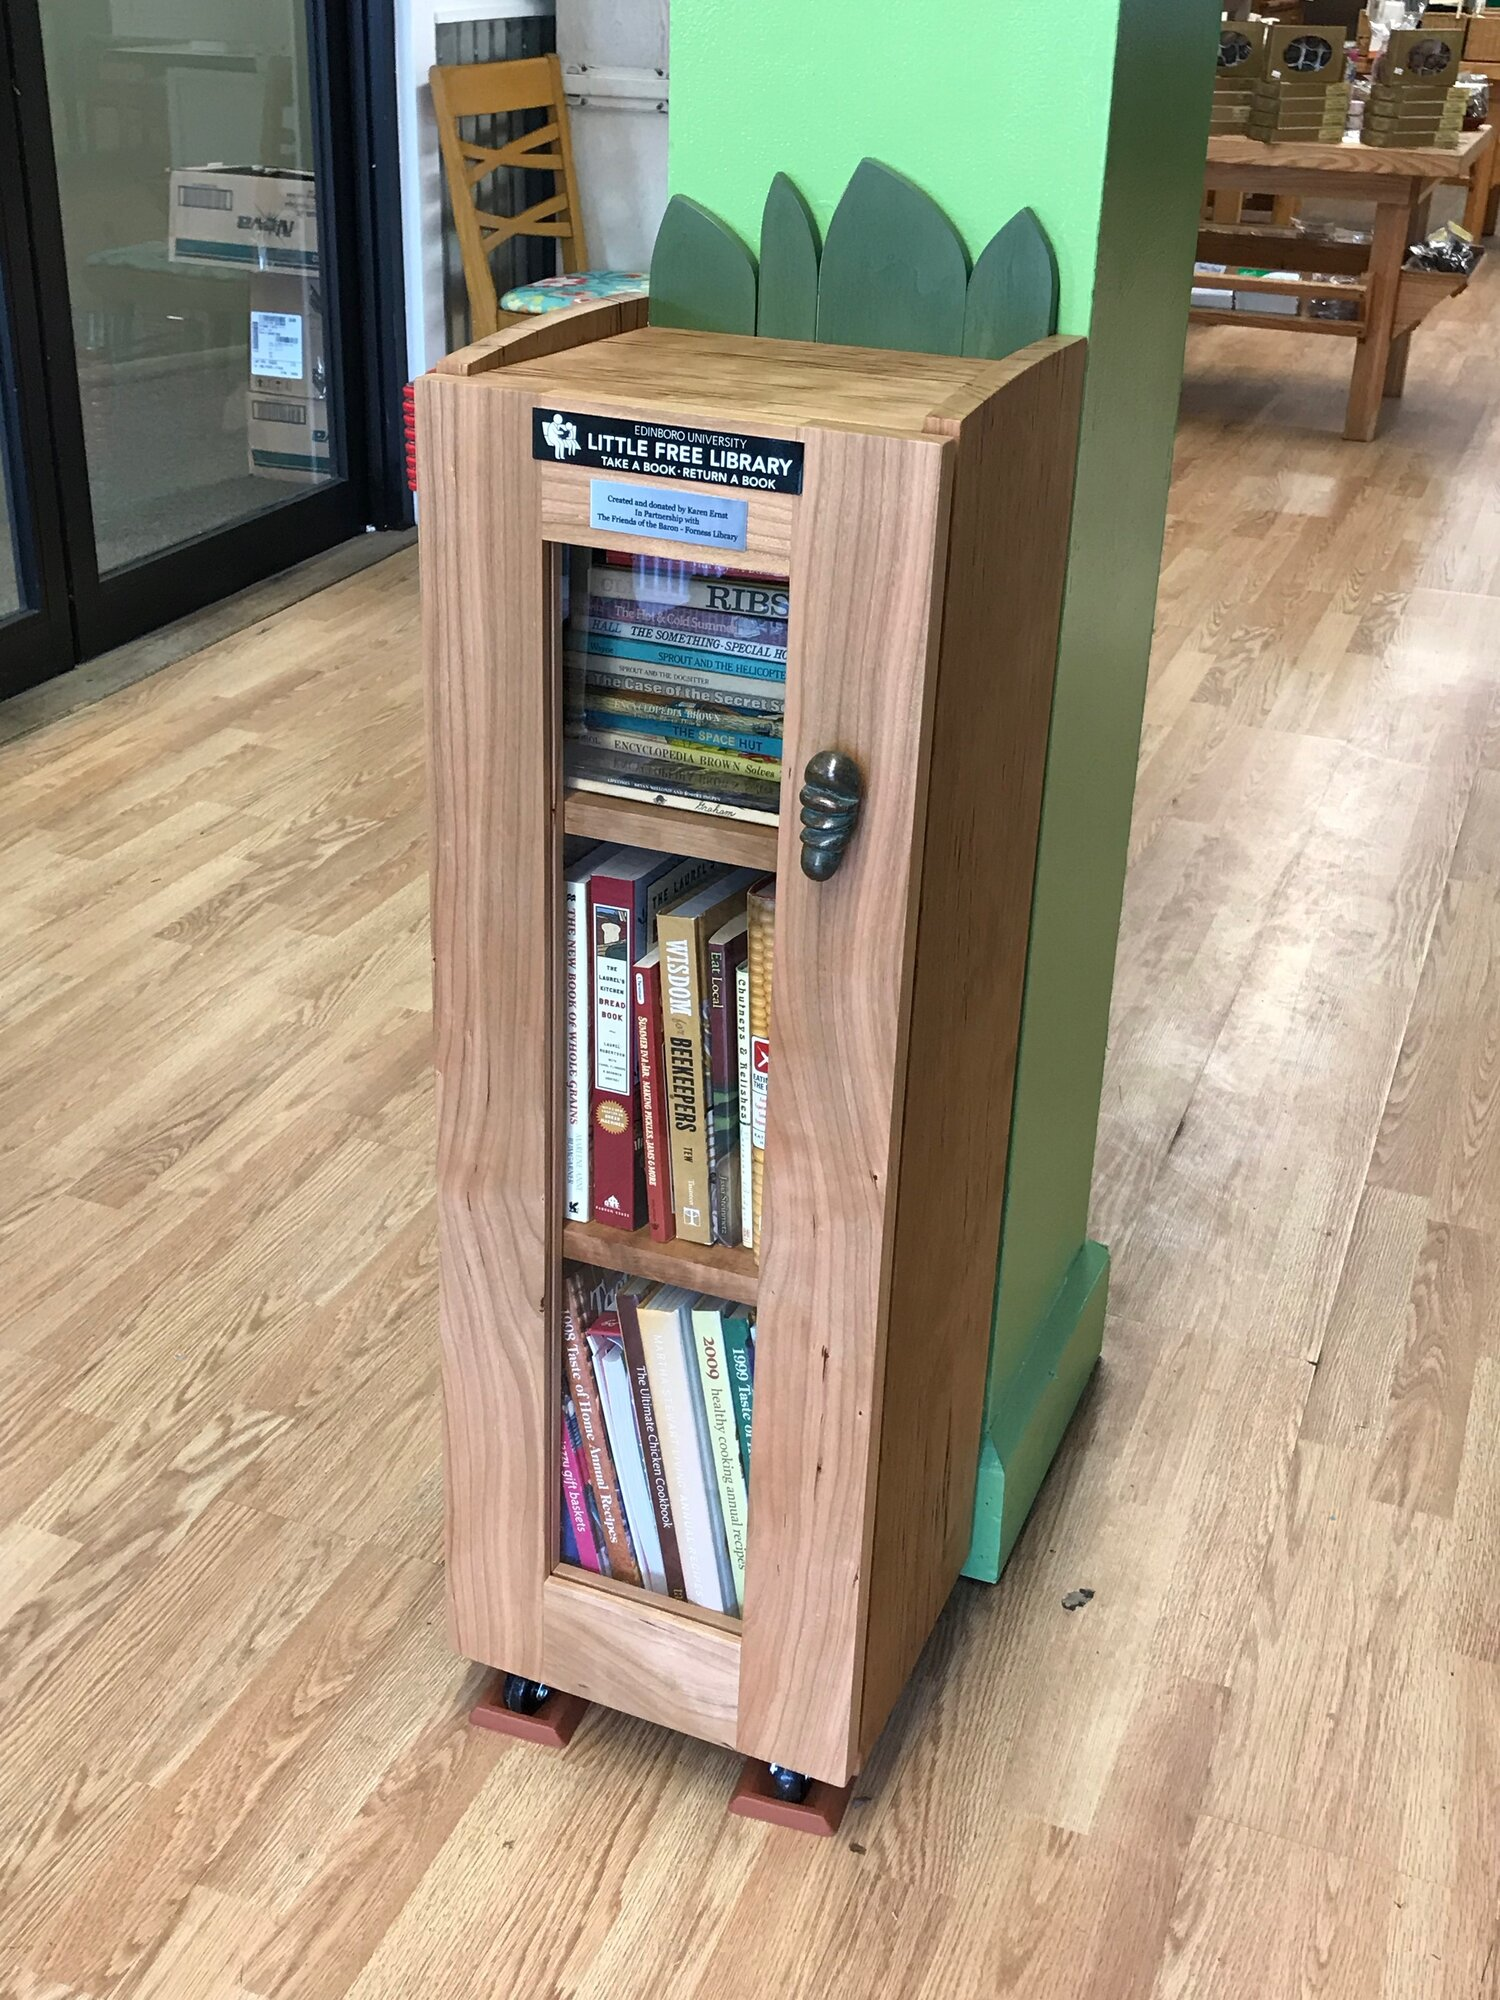 Sprout Cabinet - Little Free Library